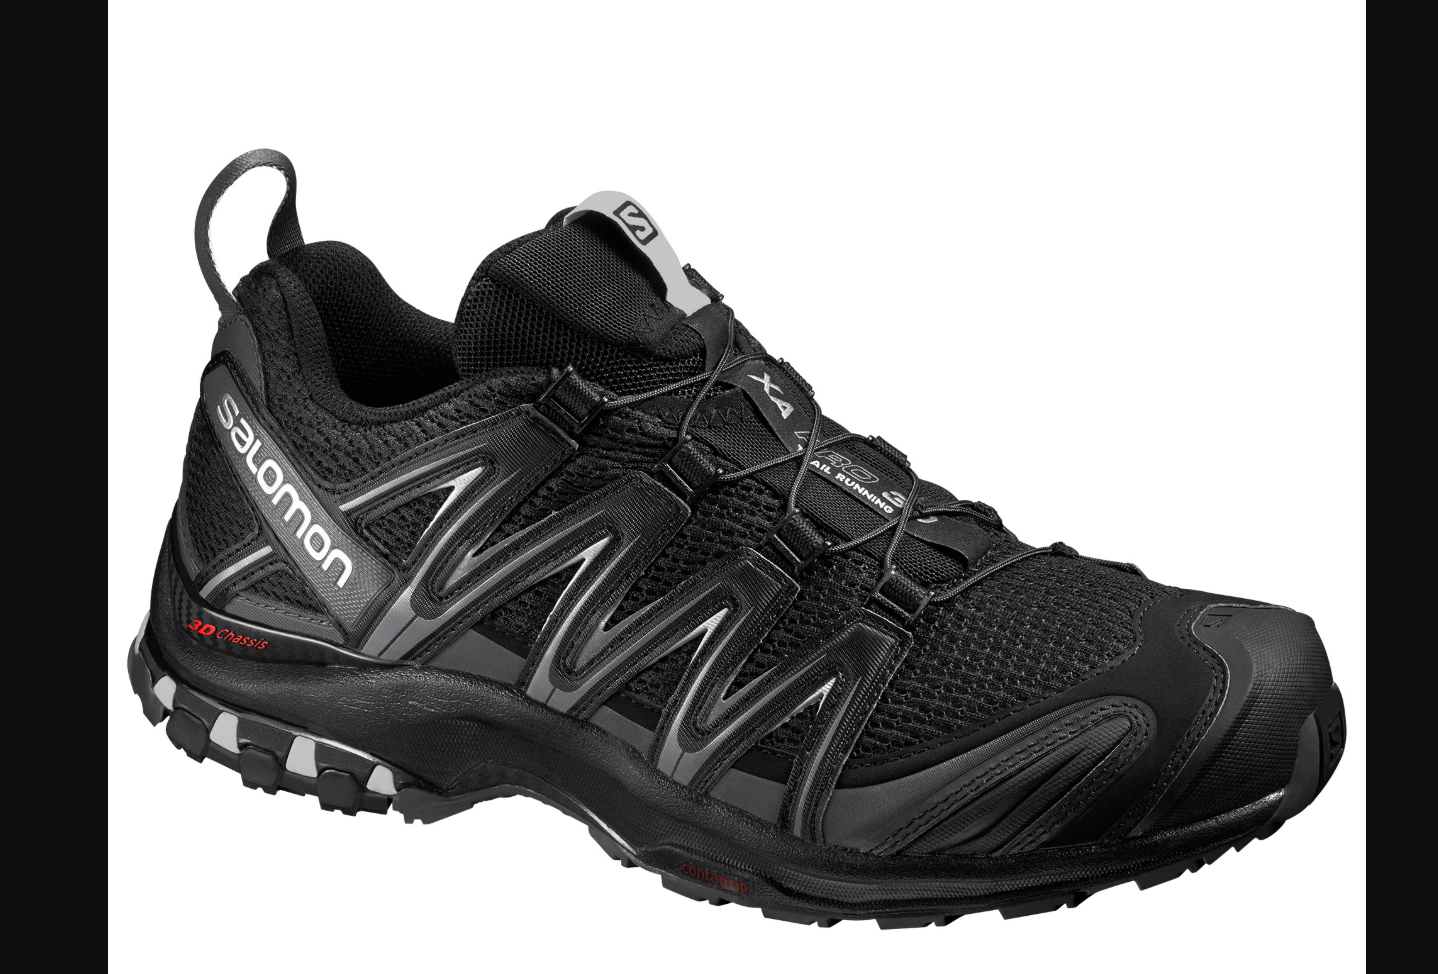 10 Best Salomon Running Shoes for Women for 2019